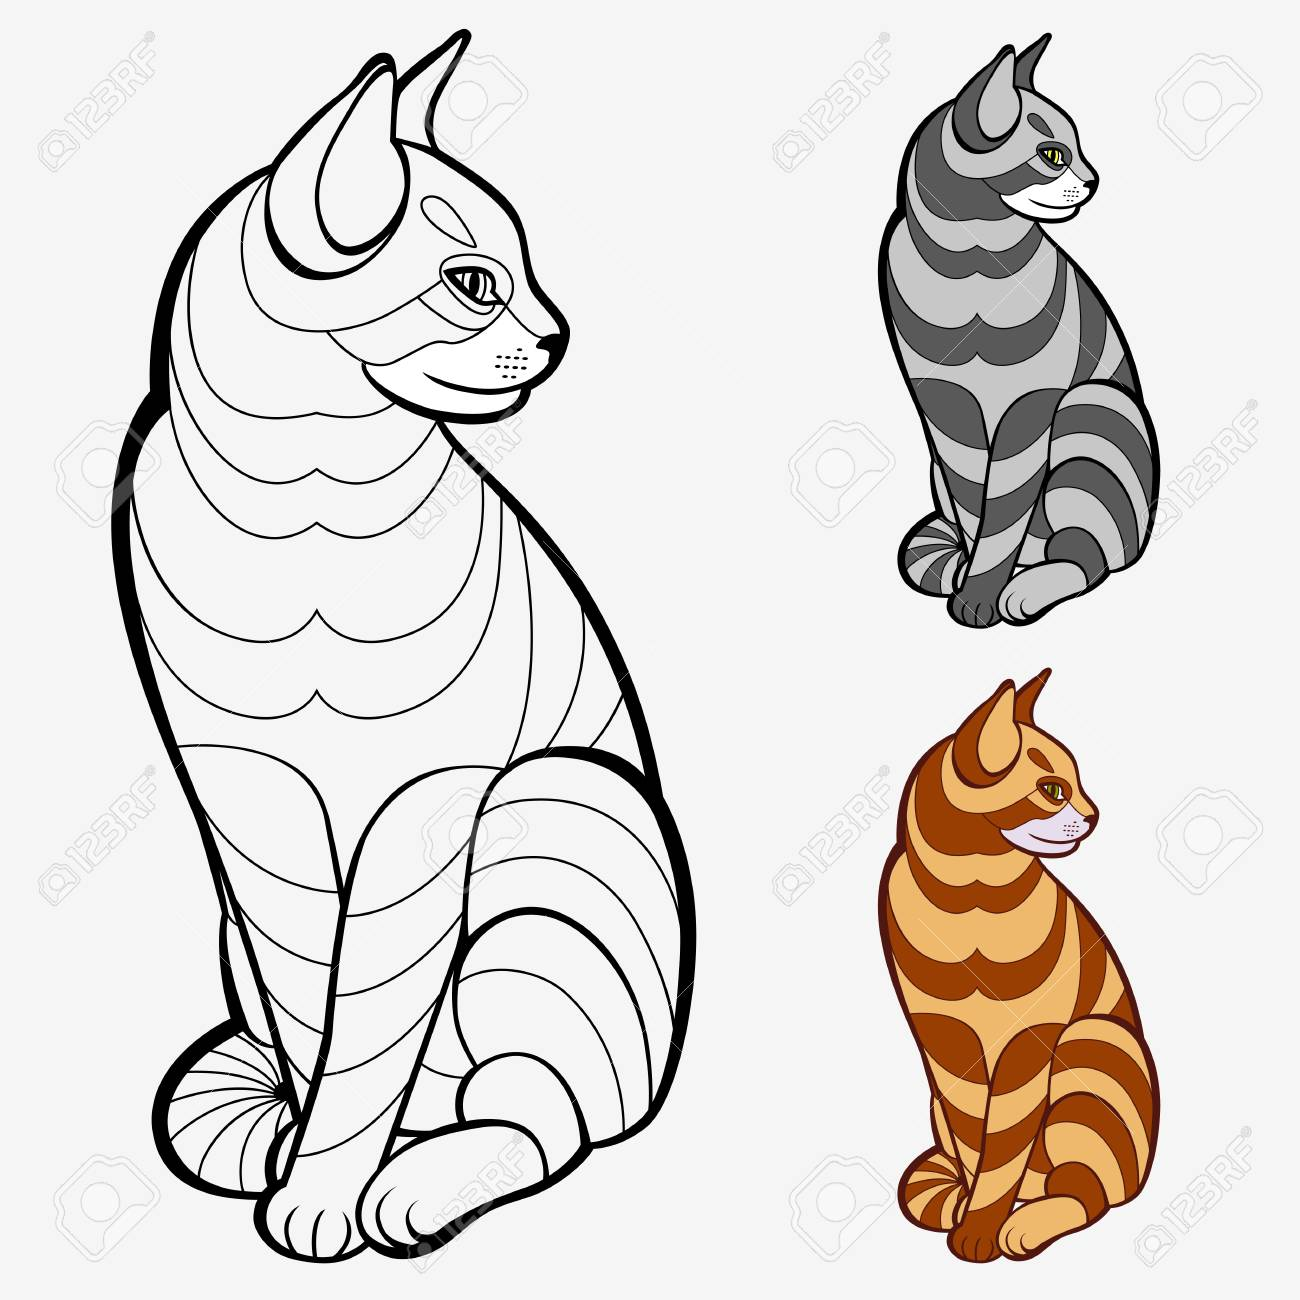 Coloring Book Pages For Kids And Adults Striped Cat